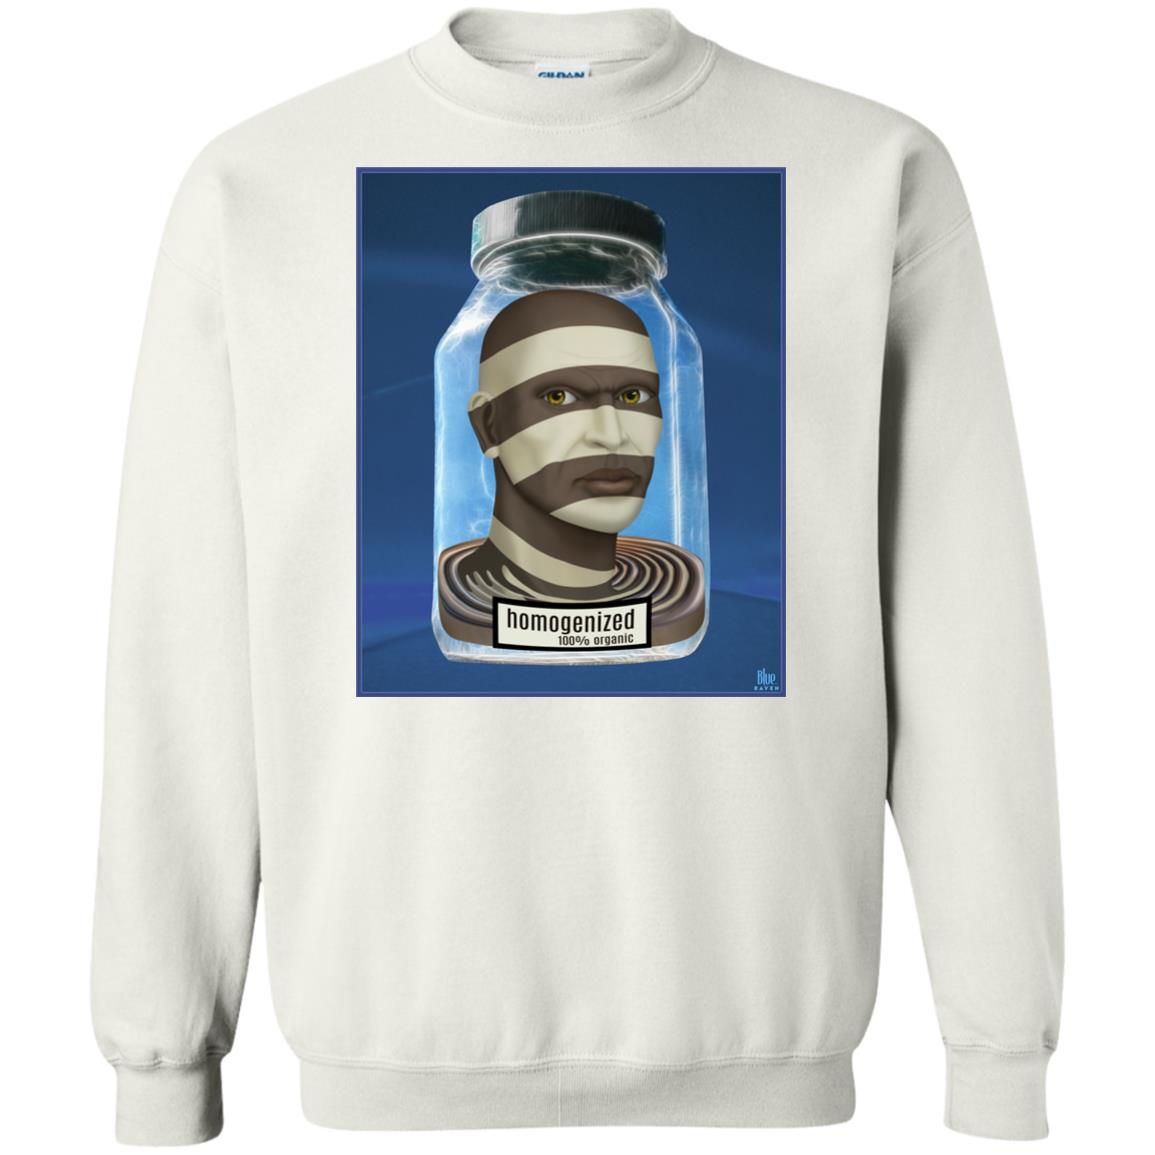 HOMOGENIZED - blue - Men's Crew Neck Sweatshirt